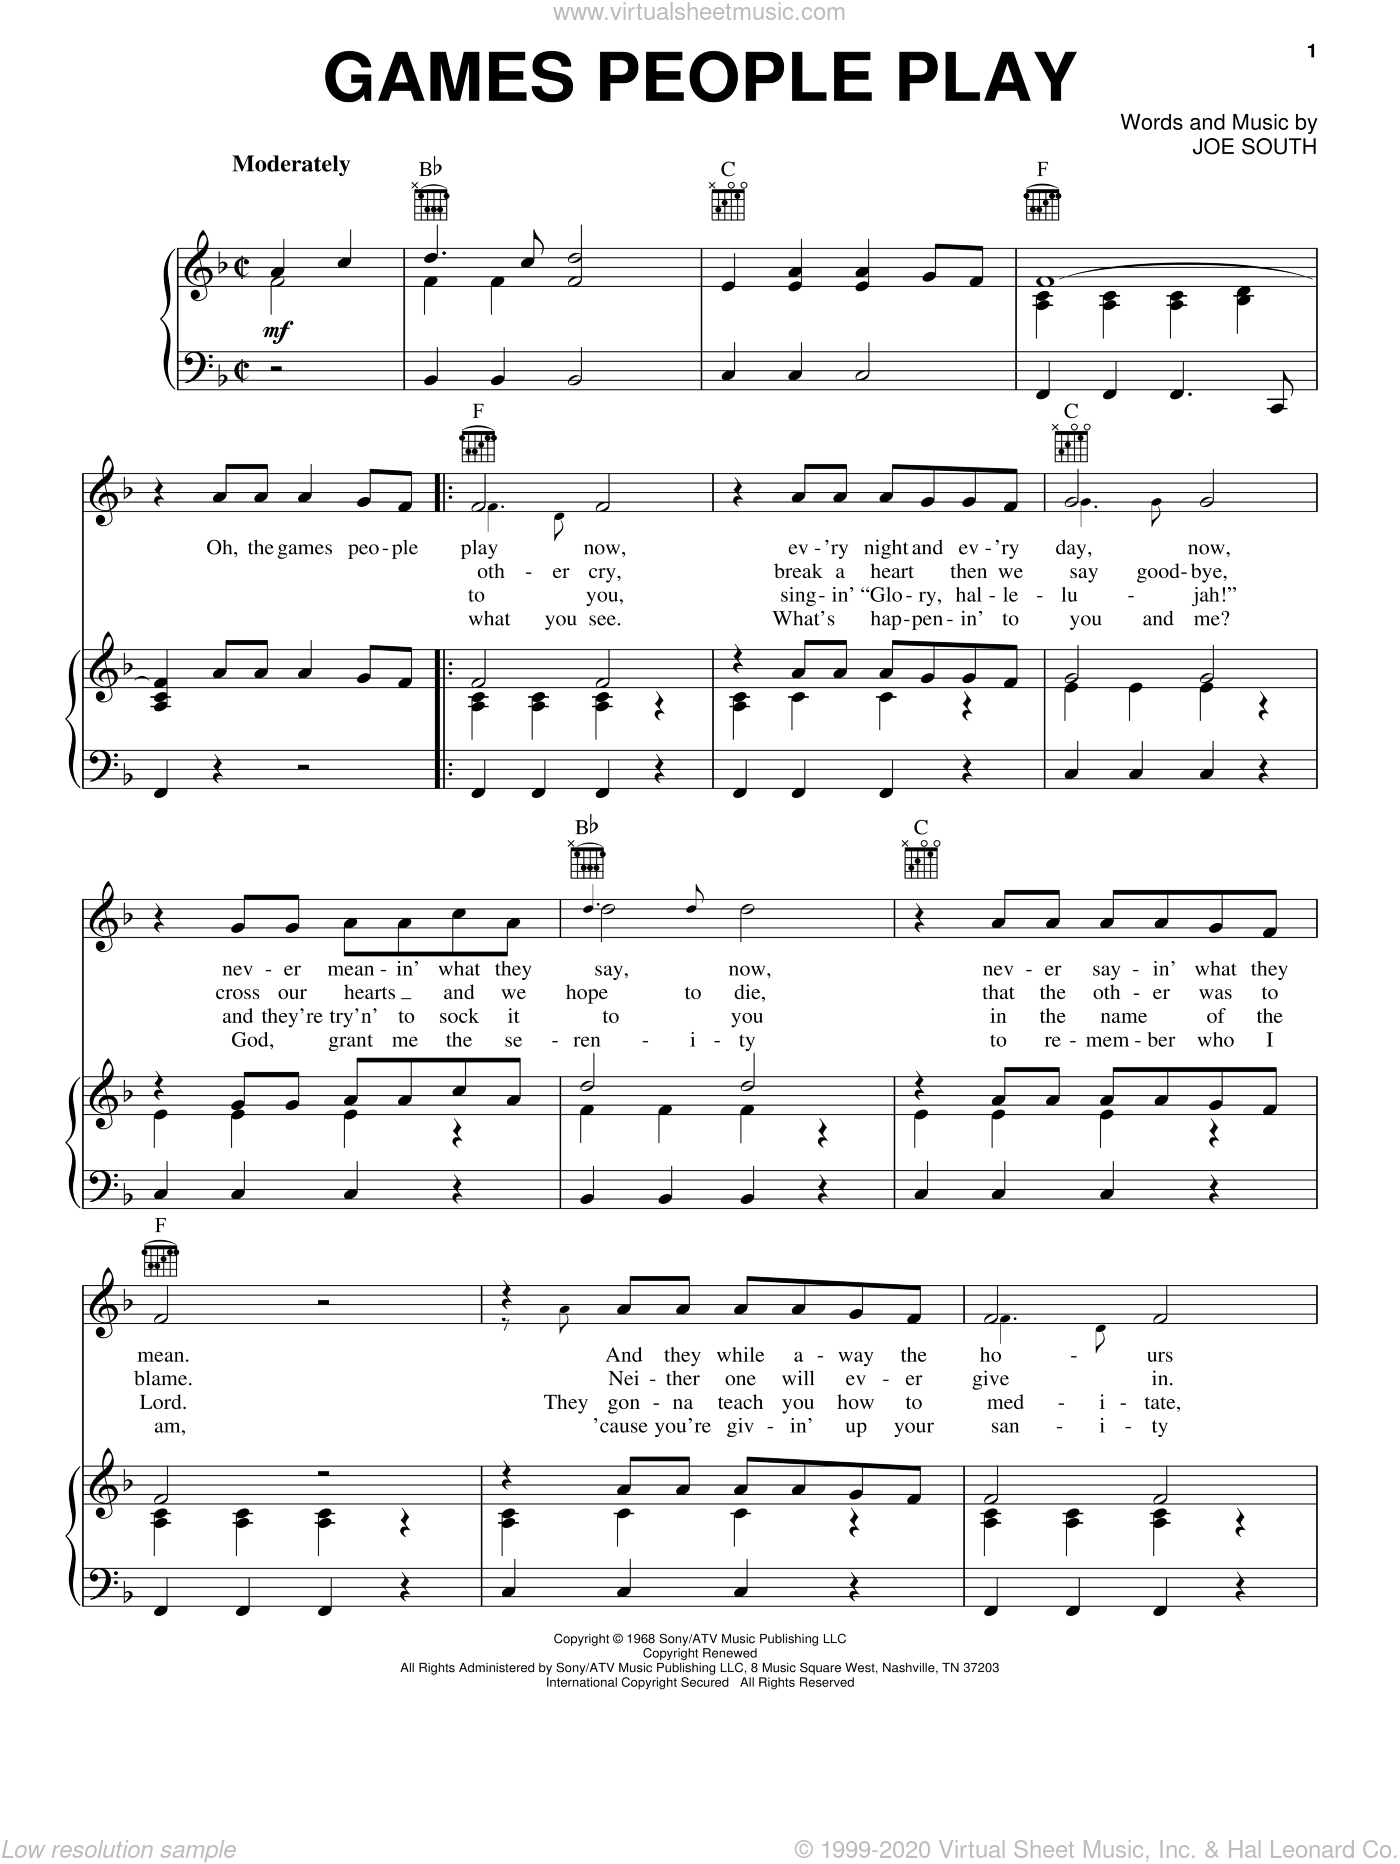 Games People Play sheet music for voice, piano or guitar by Joe South, intermediate skill level